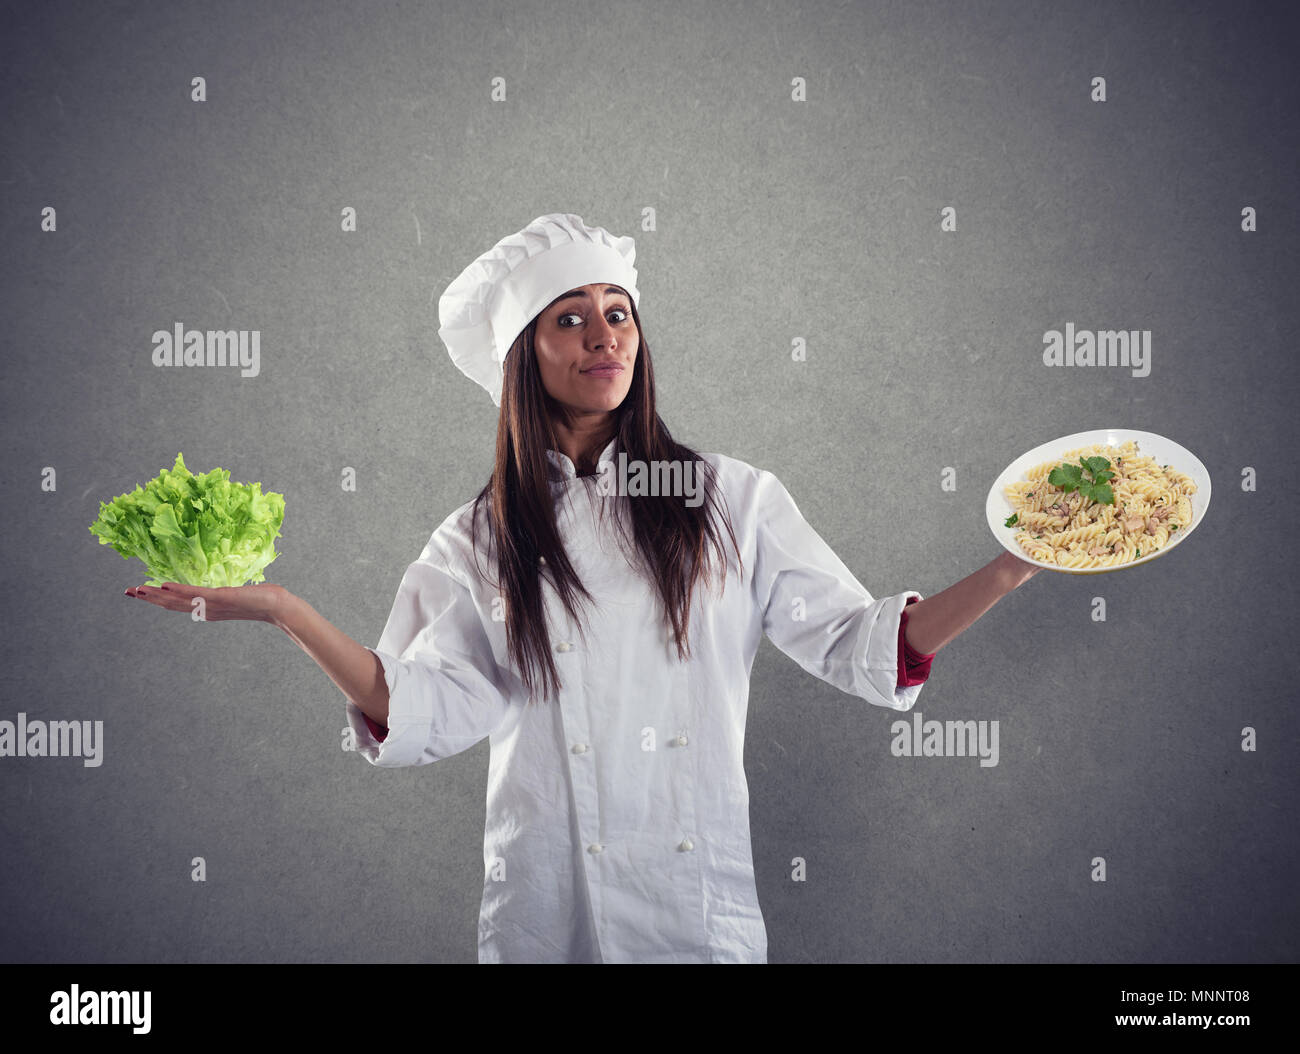 Chef undecided between fresh salad or pasta dish - Stock Image